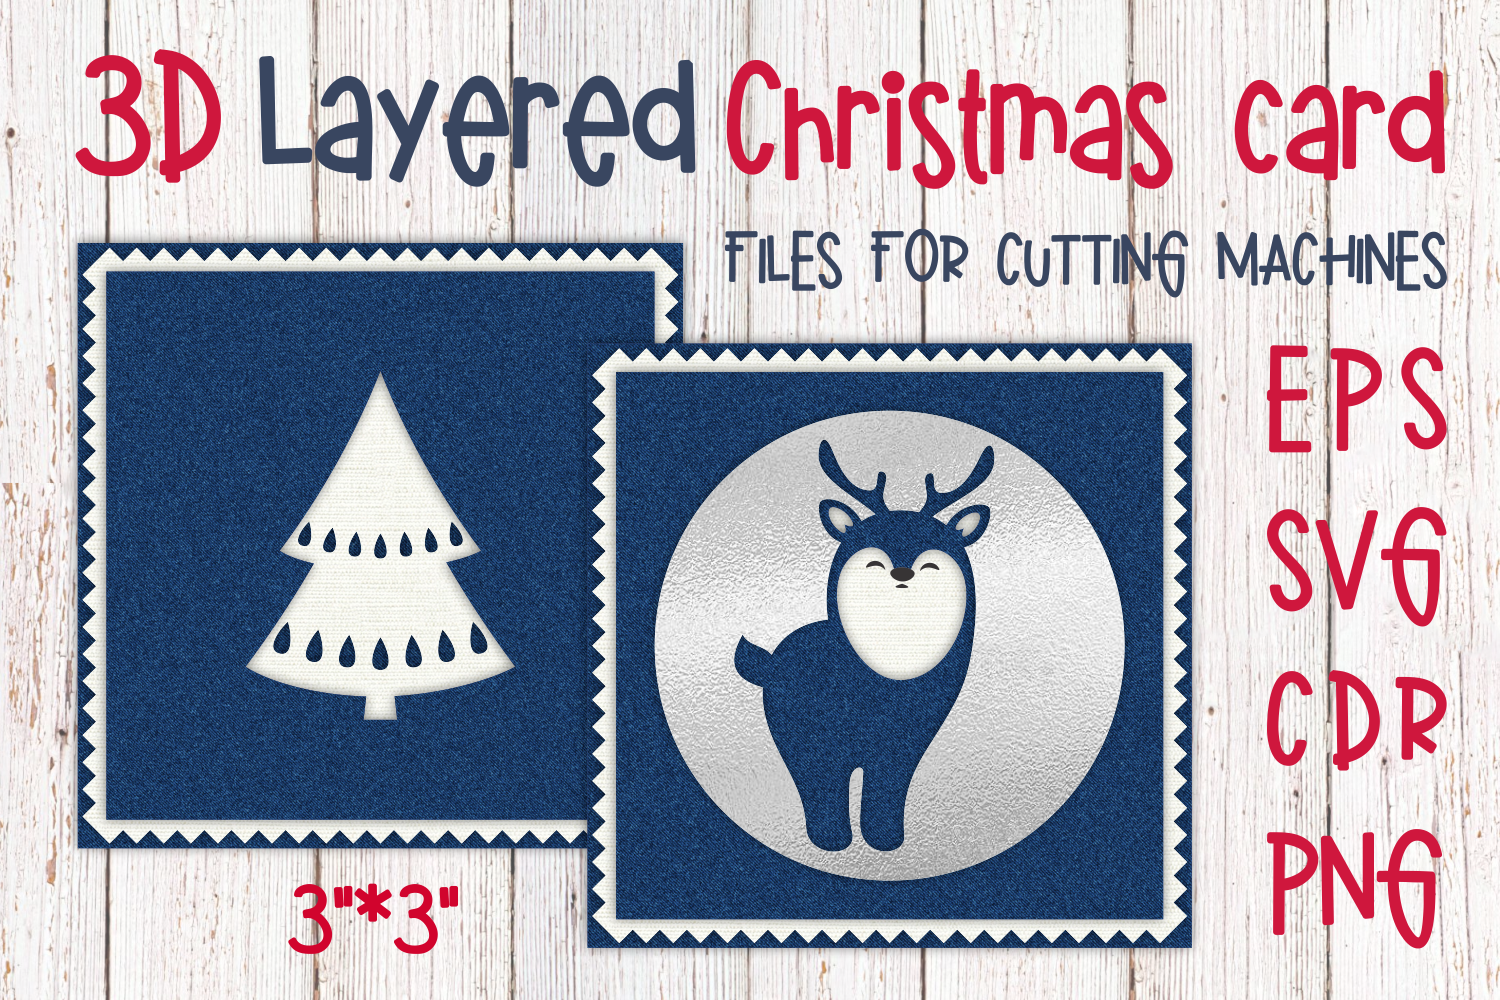 Download Free 3d Layered Christmas Card With Reindeer Graphic By Olga Belova for Cricut Explore, Silhouette and other cutting machines.